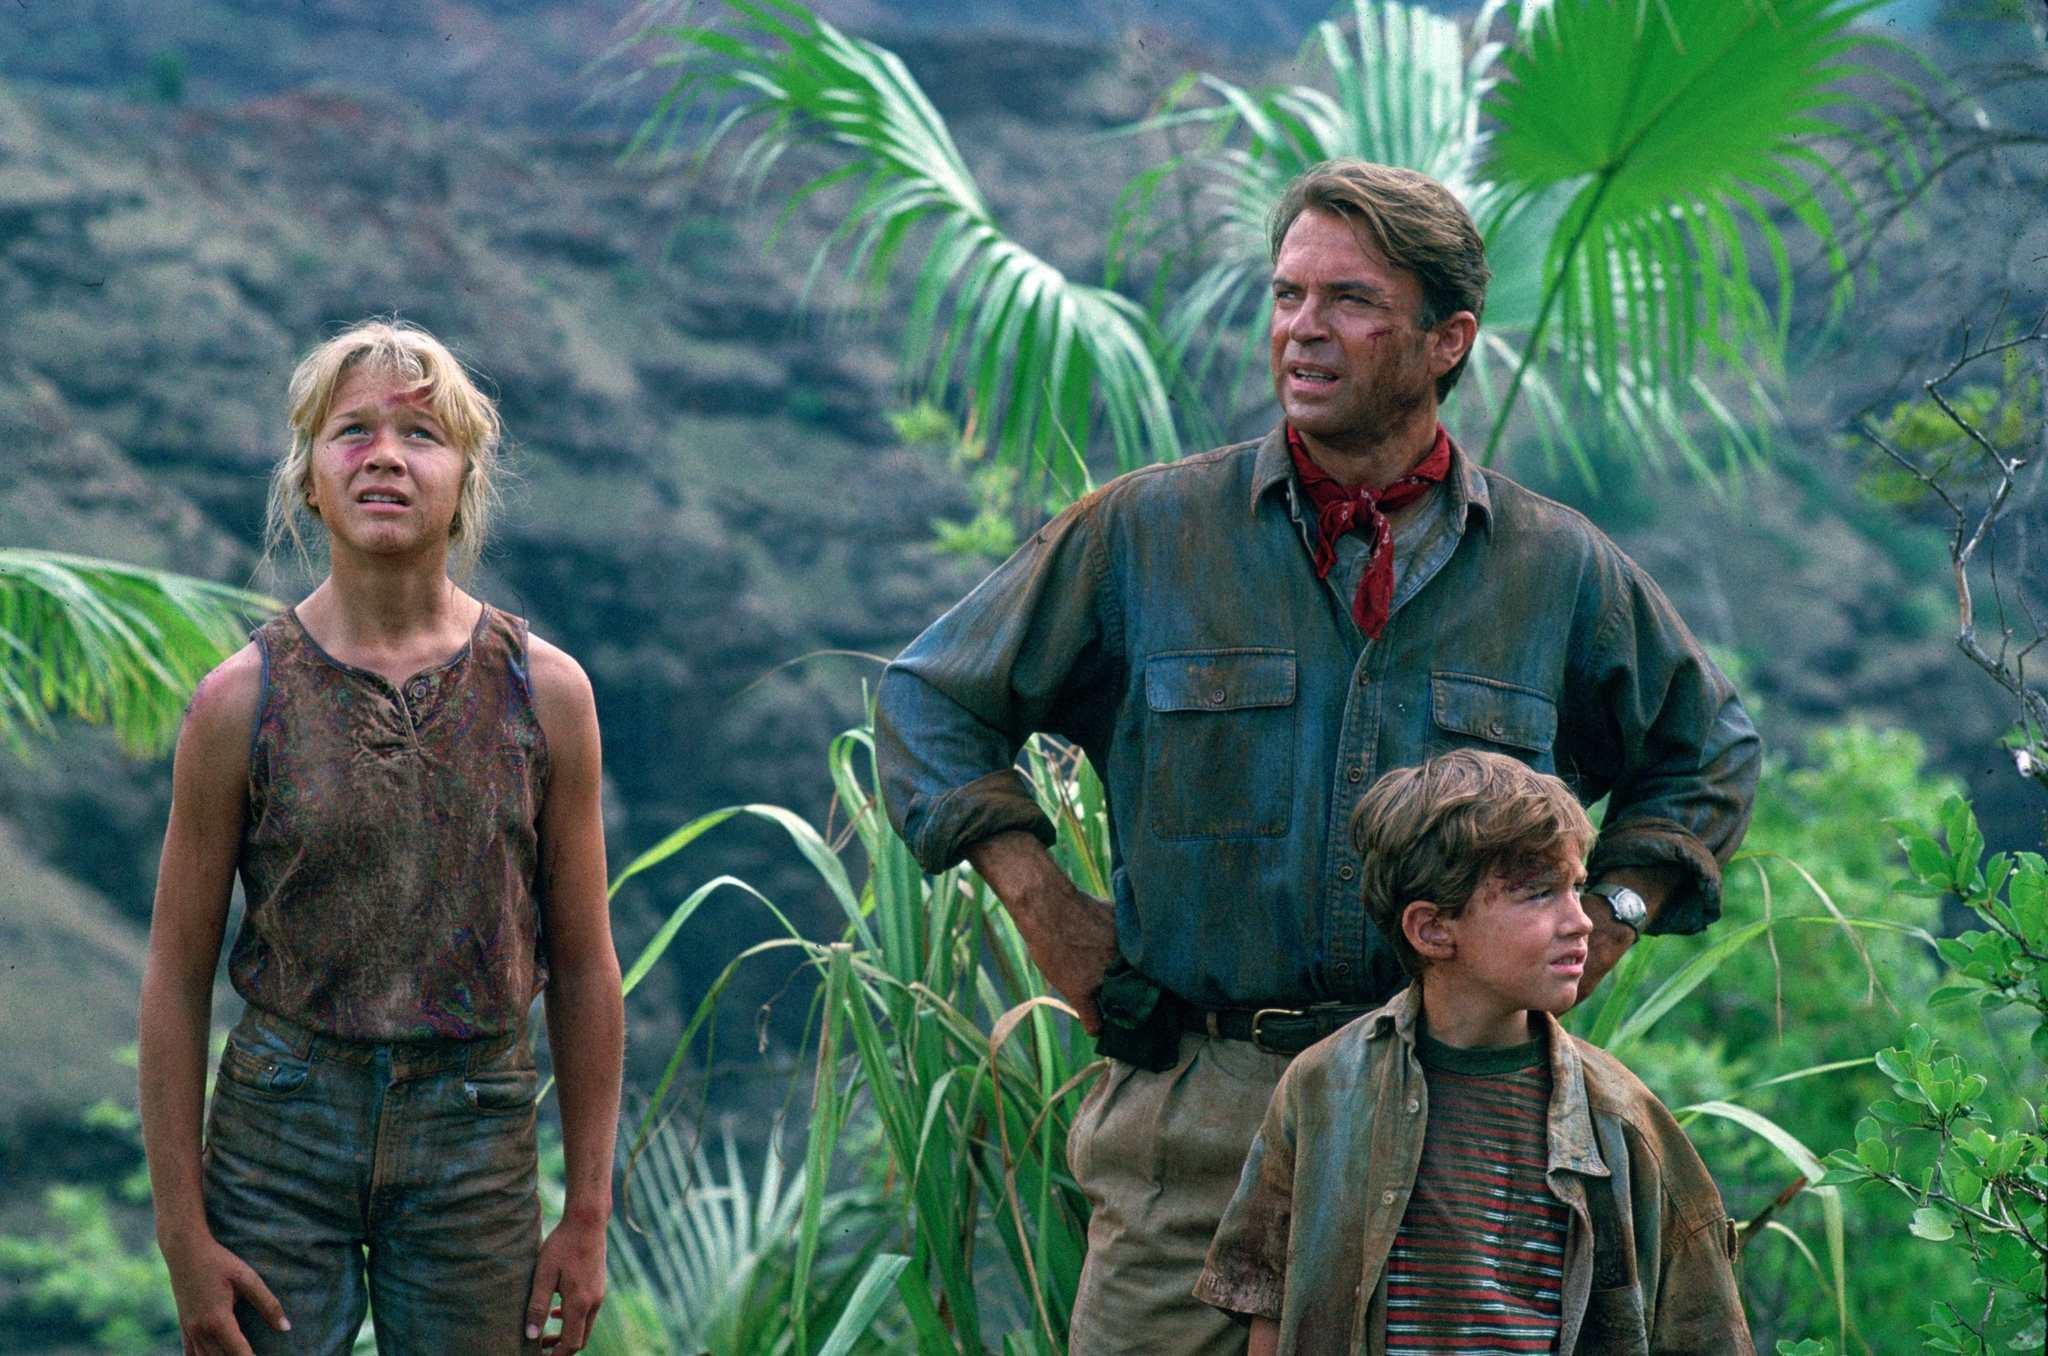 picture-of-sam-neill-ariana-richards-and-joseph-mazzello-in-jurassic-park-large-picture.jpg